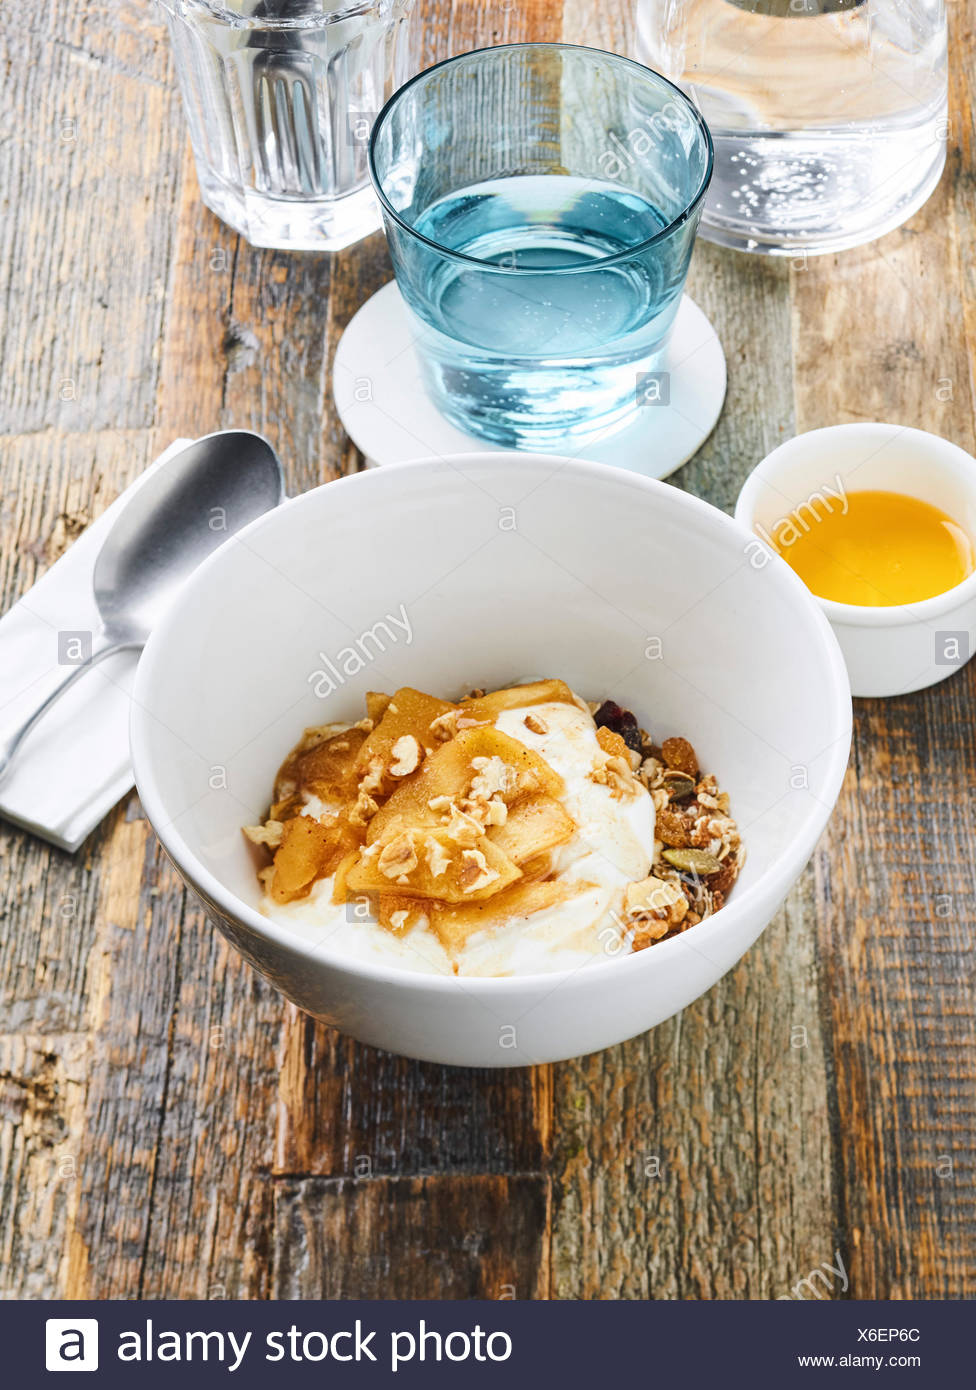 Granola with caramelised apples and yogurt, shot from above - Stock Image